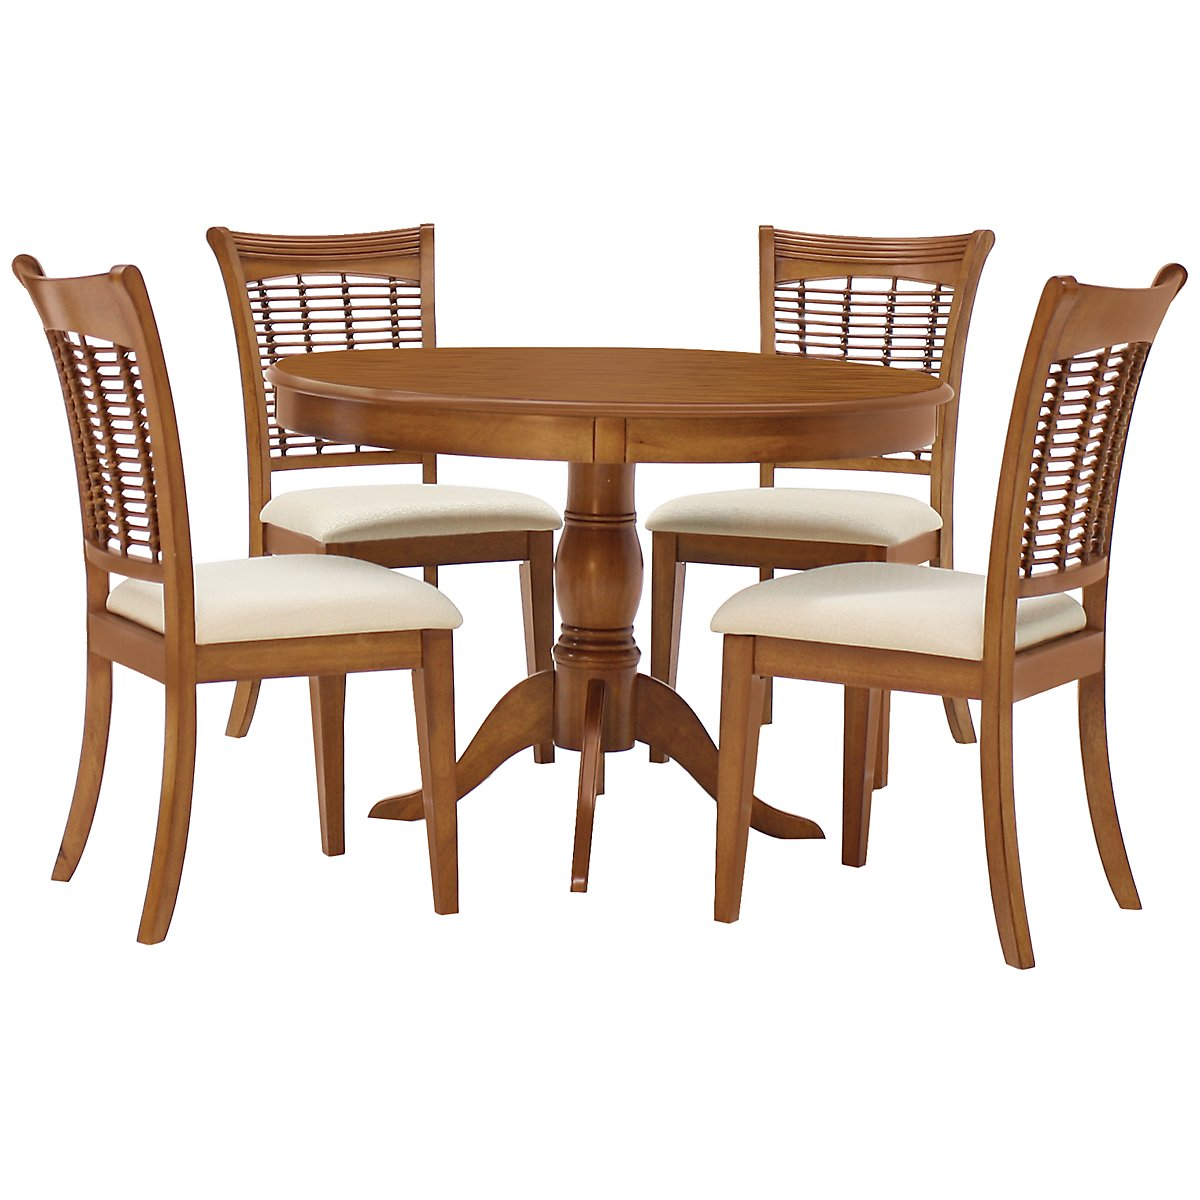 Stunning round dining room tables for 4 pictures for 4 dining room table